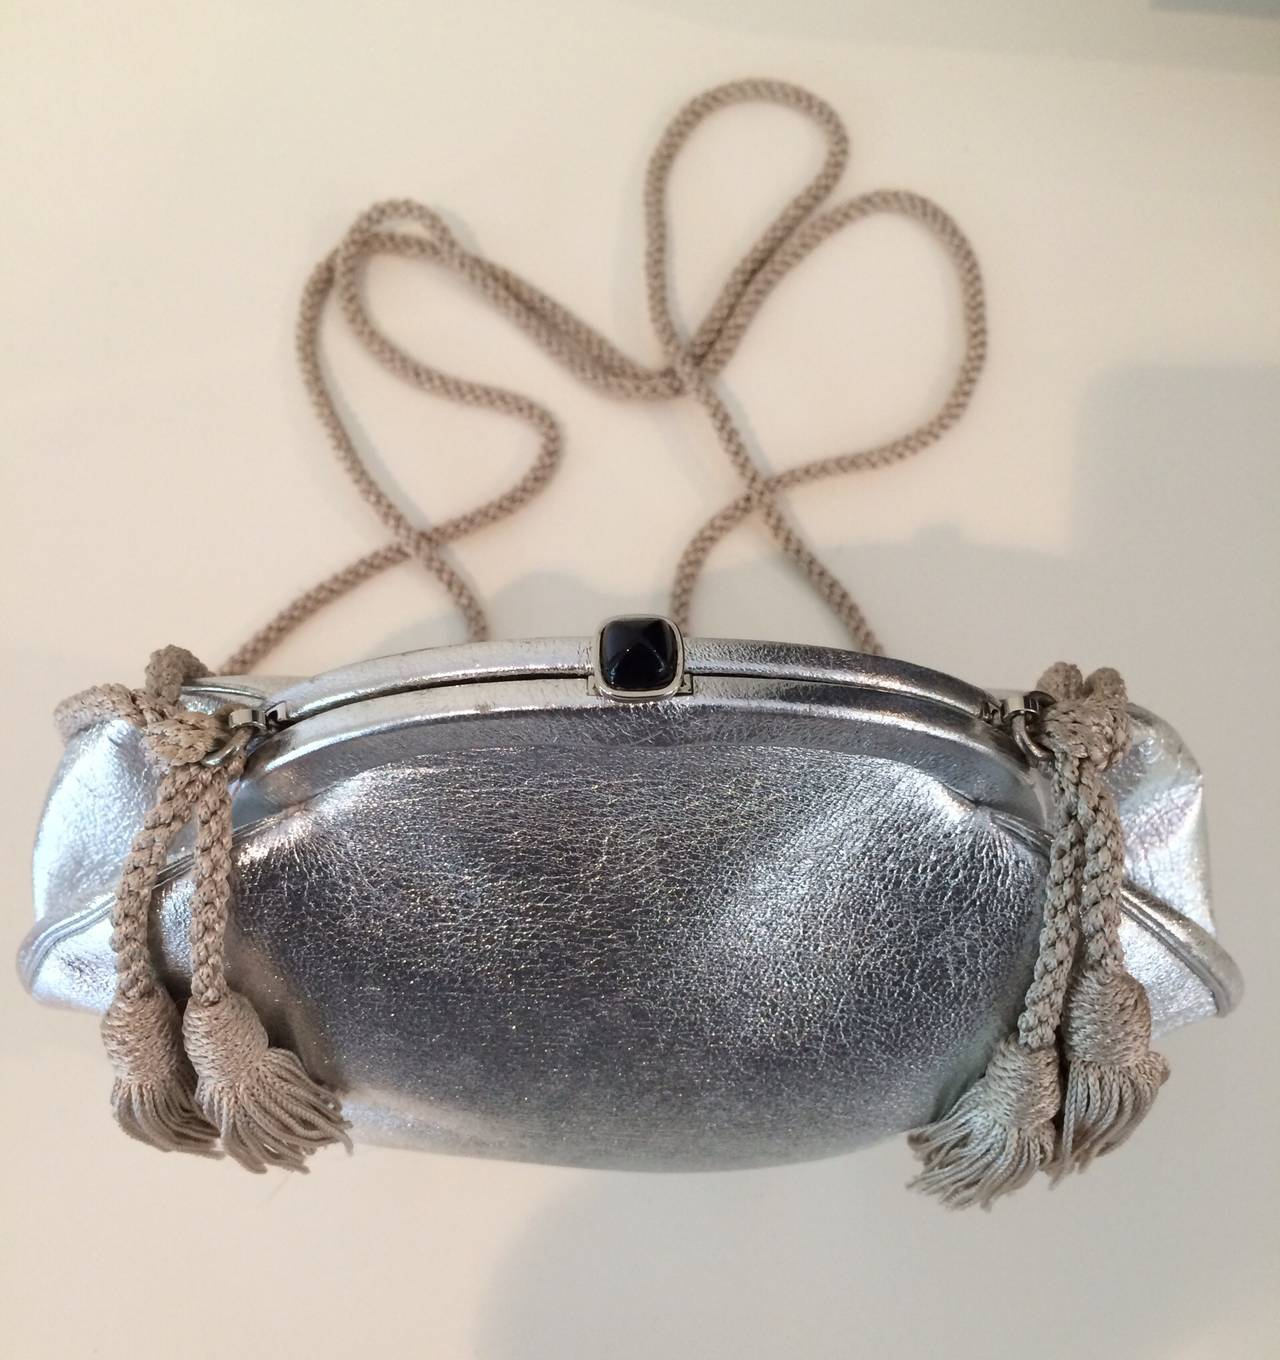 Vintage Judith Leiber  Metallic Silver Leather Black Onyx Clap Evening Bag 3